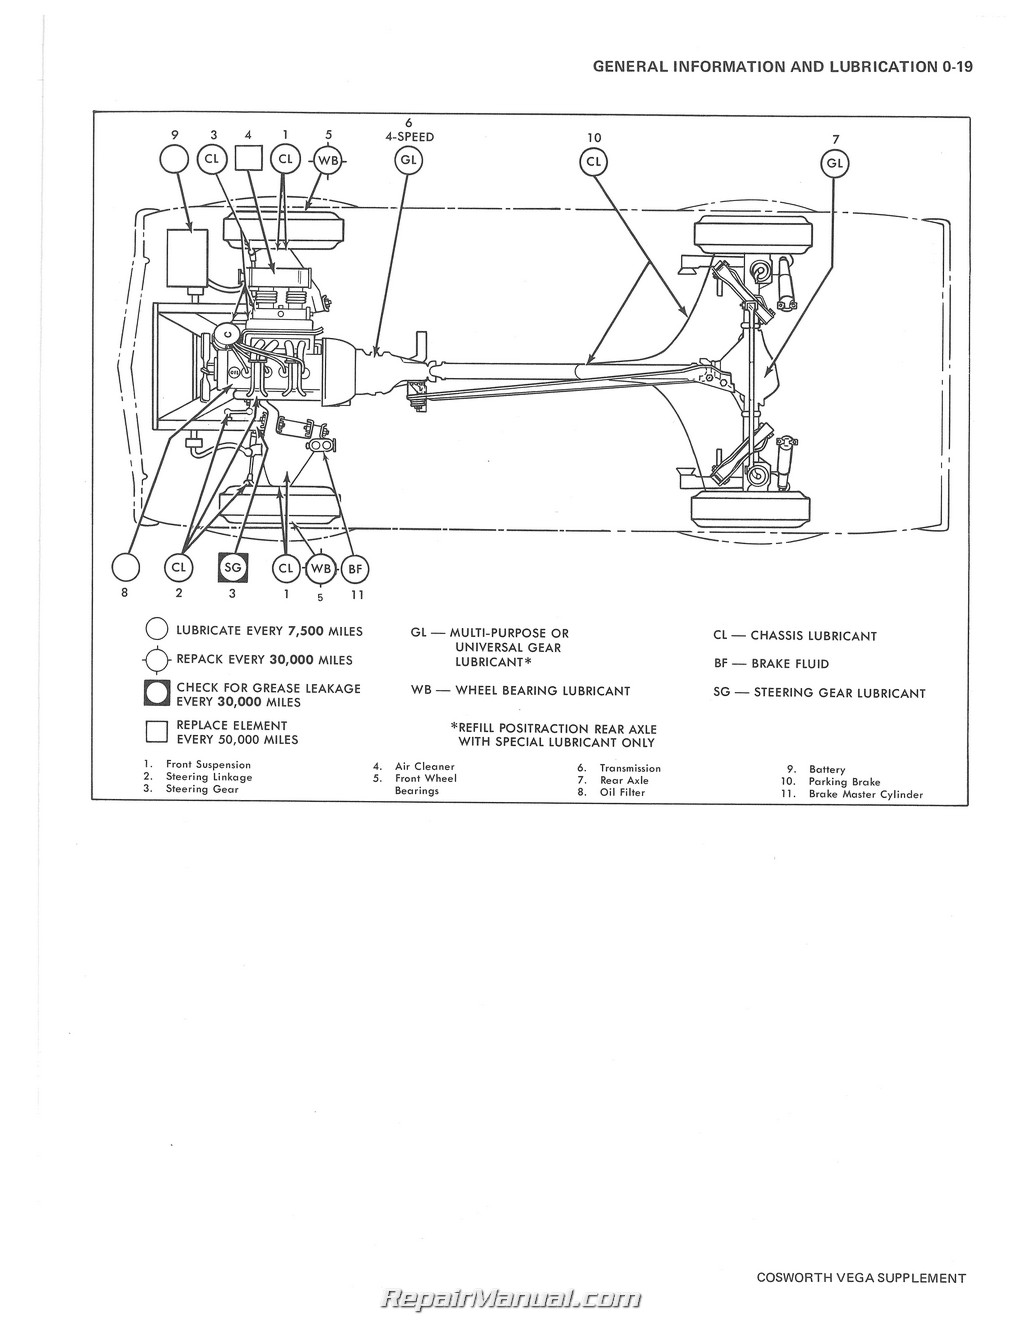 Chevy Vega Engine Diagram Trusted Wiring Diagrams 75 Cosworth Block And Schematic U2022 53 Liter